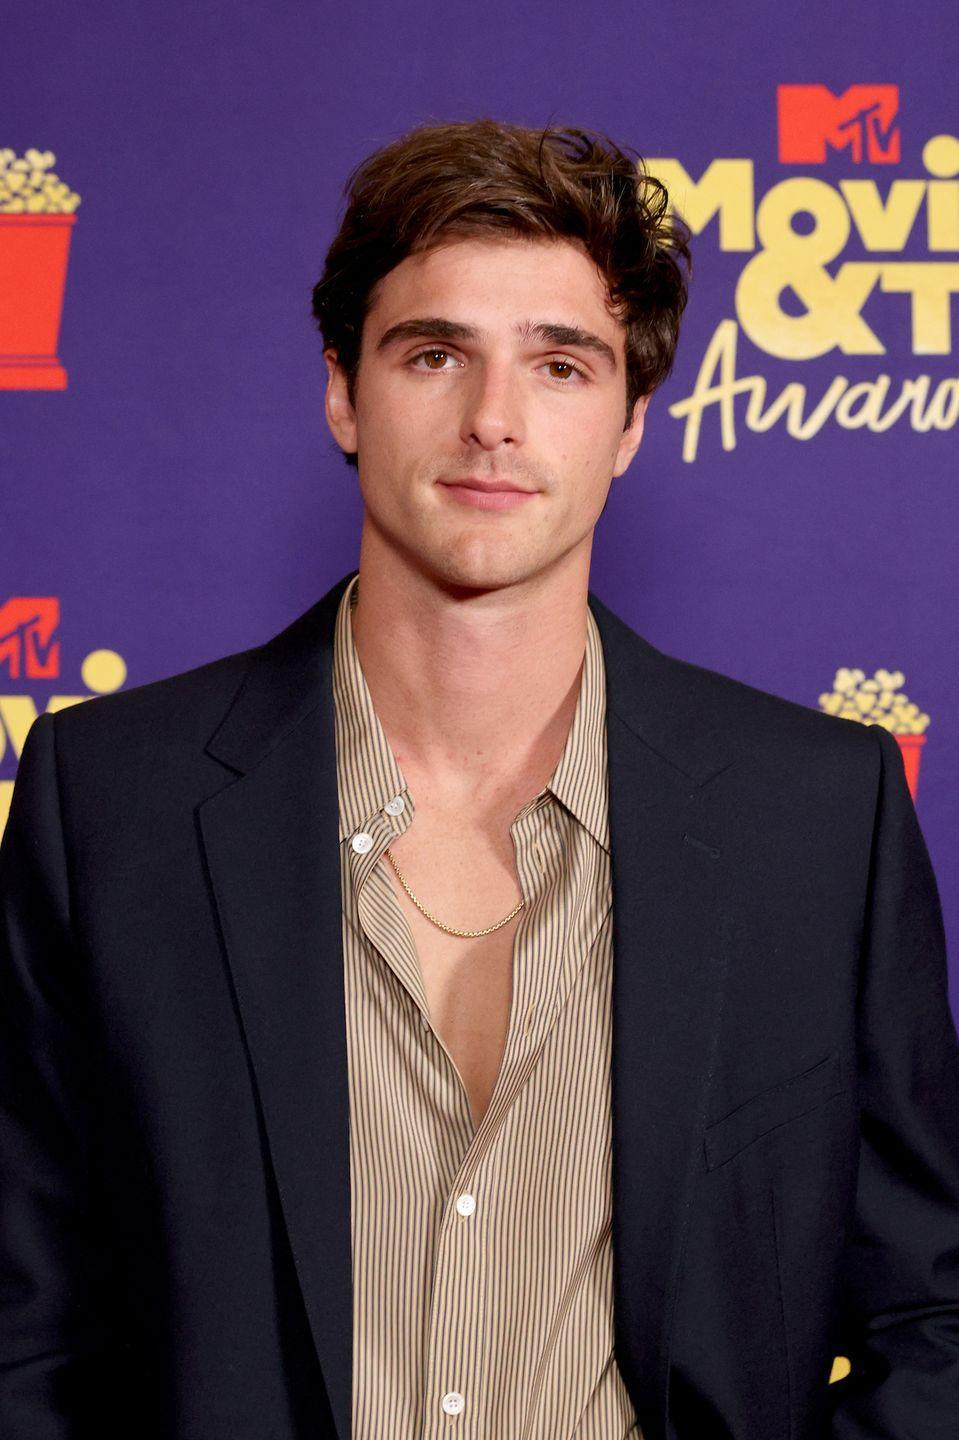 Photo credit: Kevin Winter/2021 MTV Movie and TV Awards - Getty Images